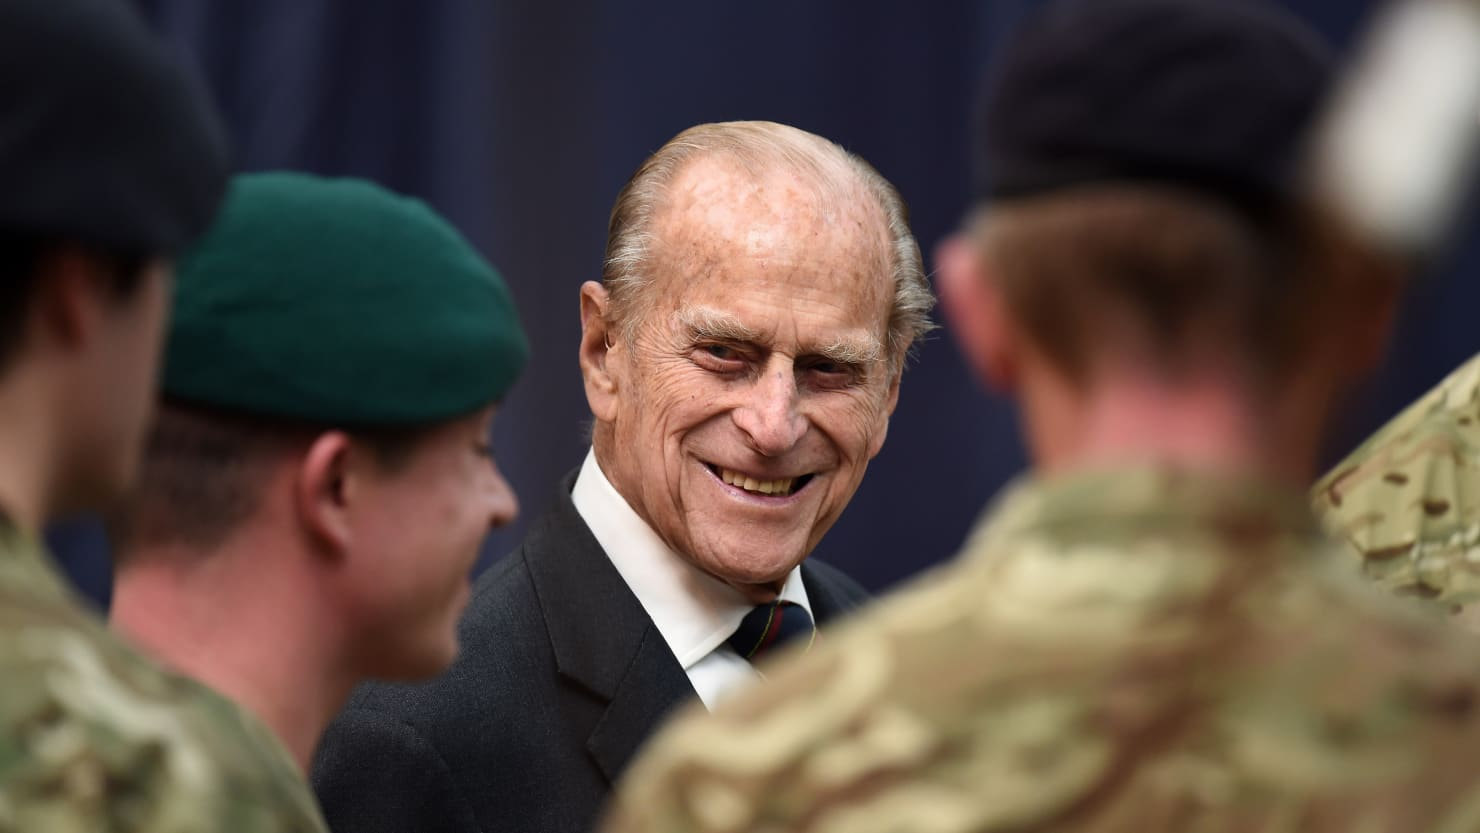 Prince Phillip meets Royal Marines at the Devonport Naval Base in November 2015 (Press Association)